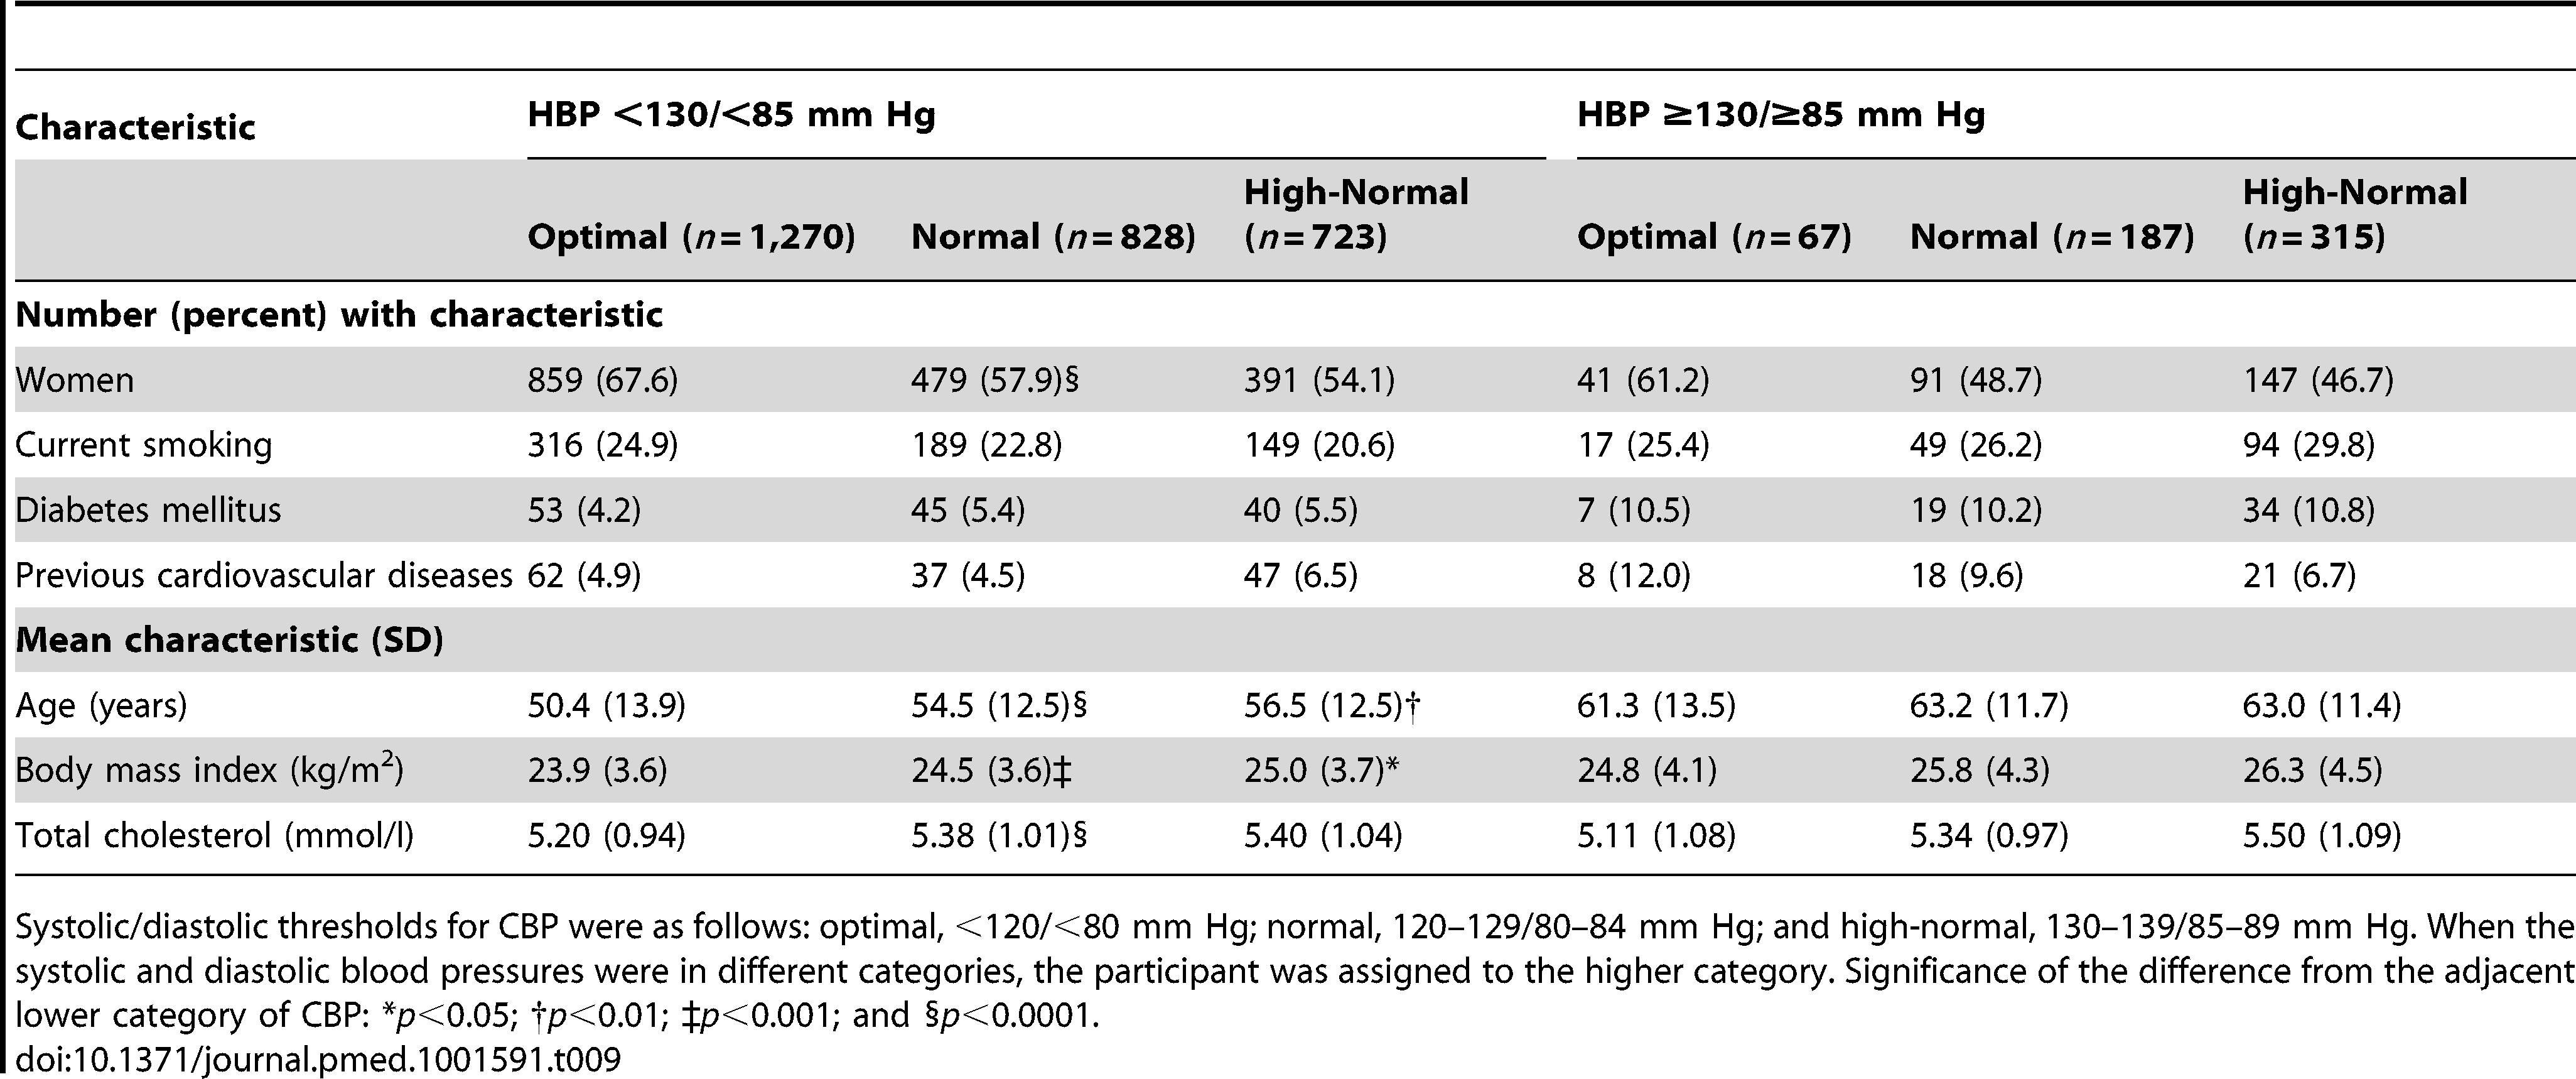 Characteristics of participants with masked hypertension (home blood pressure ≥130/≥85 mm Hg) compared with participants with true optimal, normal, or high-normal blood pressure (home blood pressure <130/<85 mm Hg).